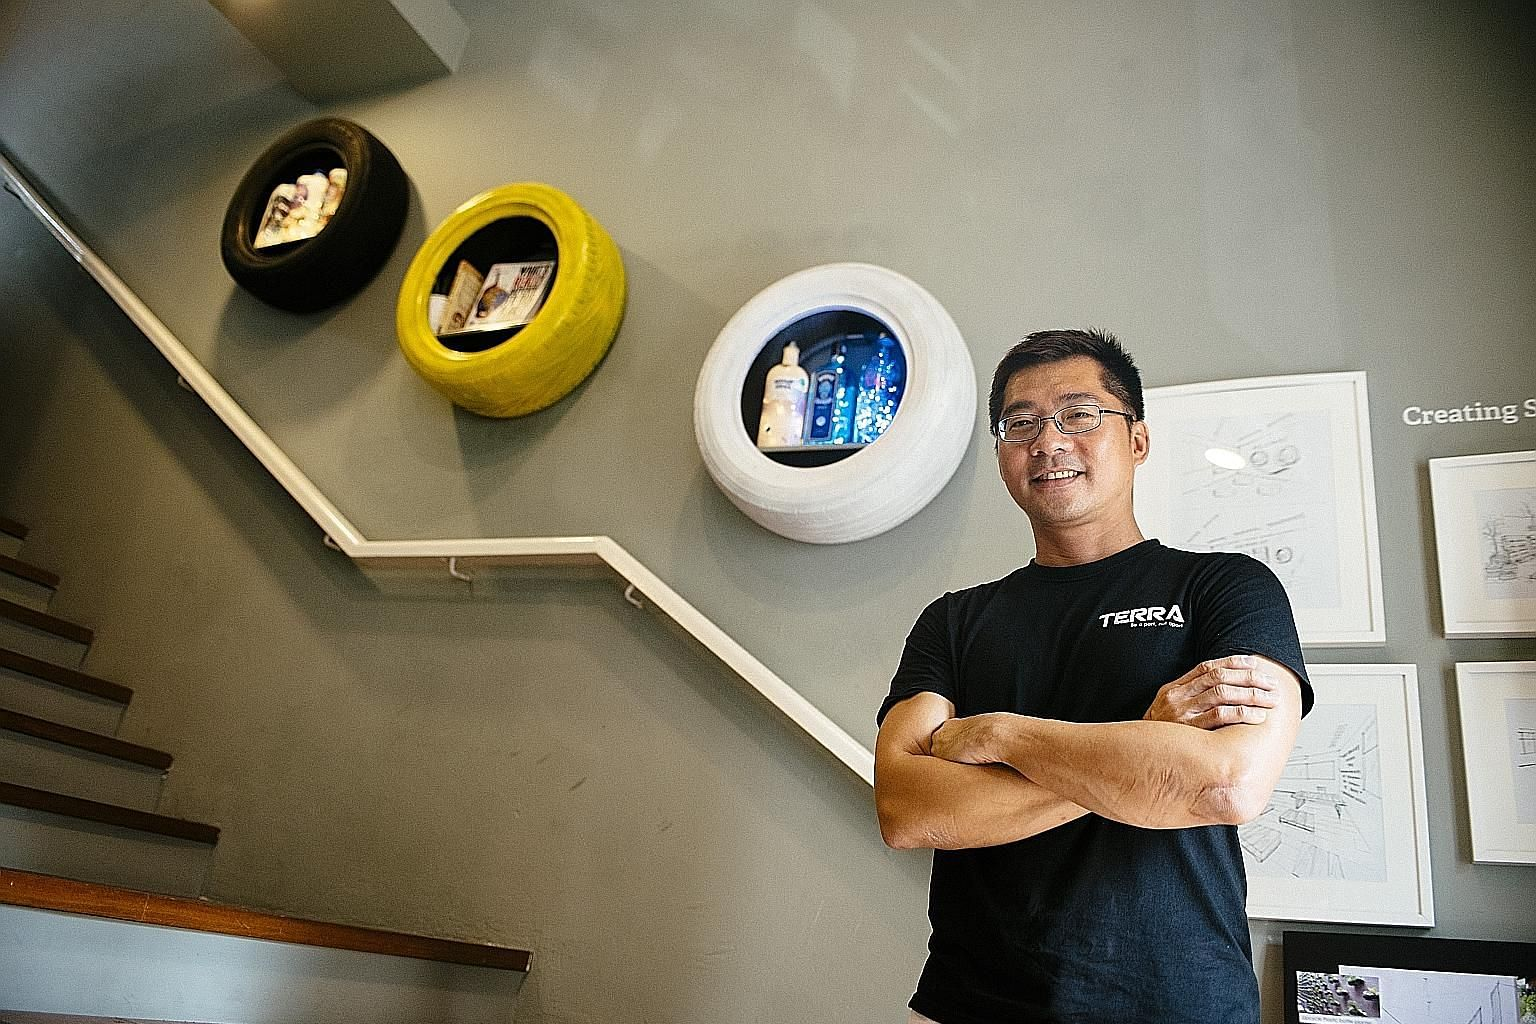 Social enterprise Terra SG, co-founded by Eric Oh (top), sells upcycled products such as coin pouches made from drinks cartons (above) and lights made from vodka bottles (left).